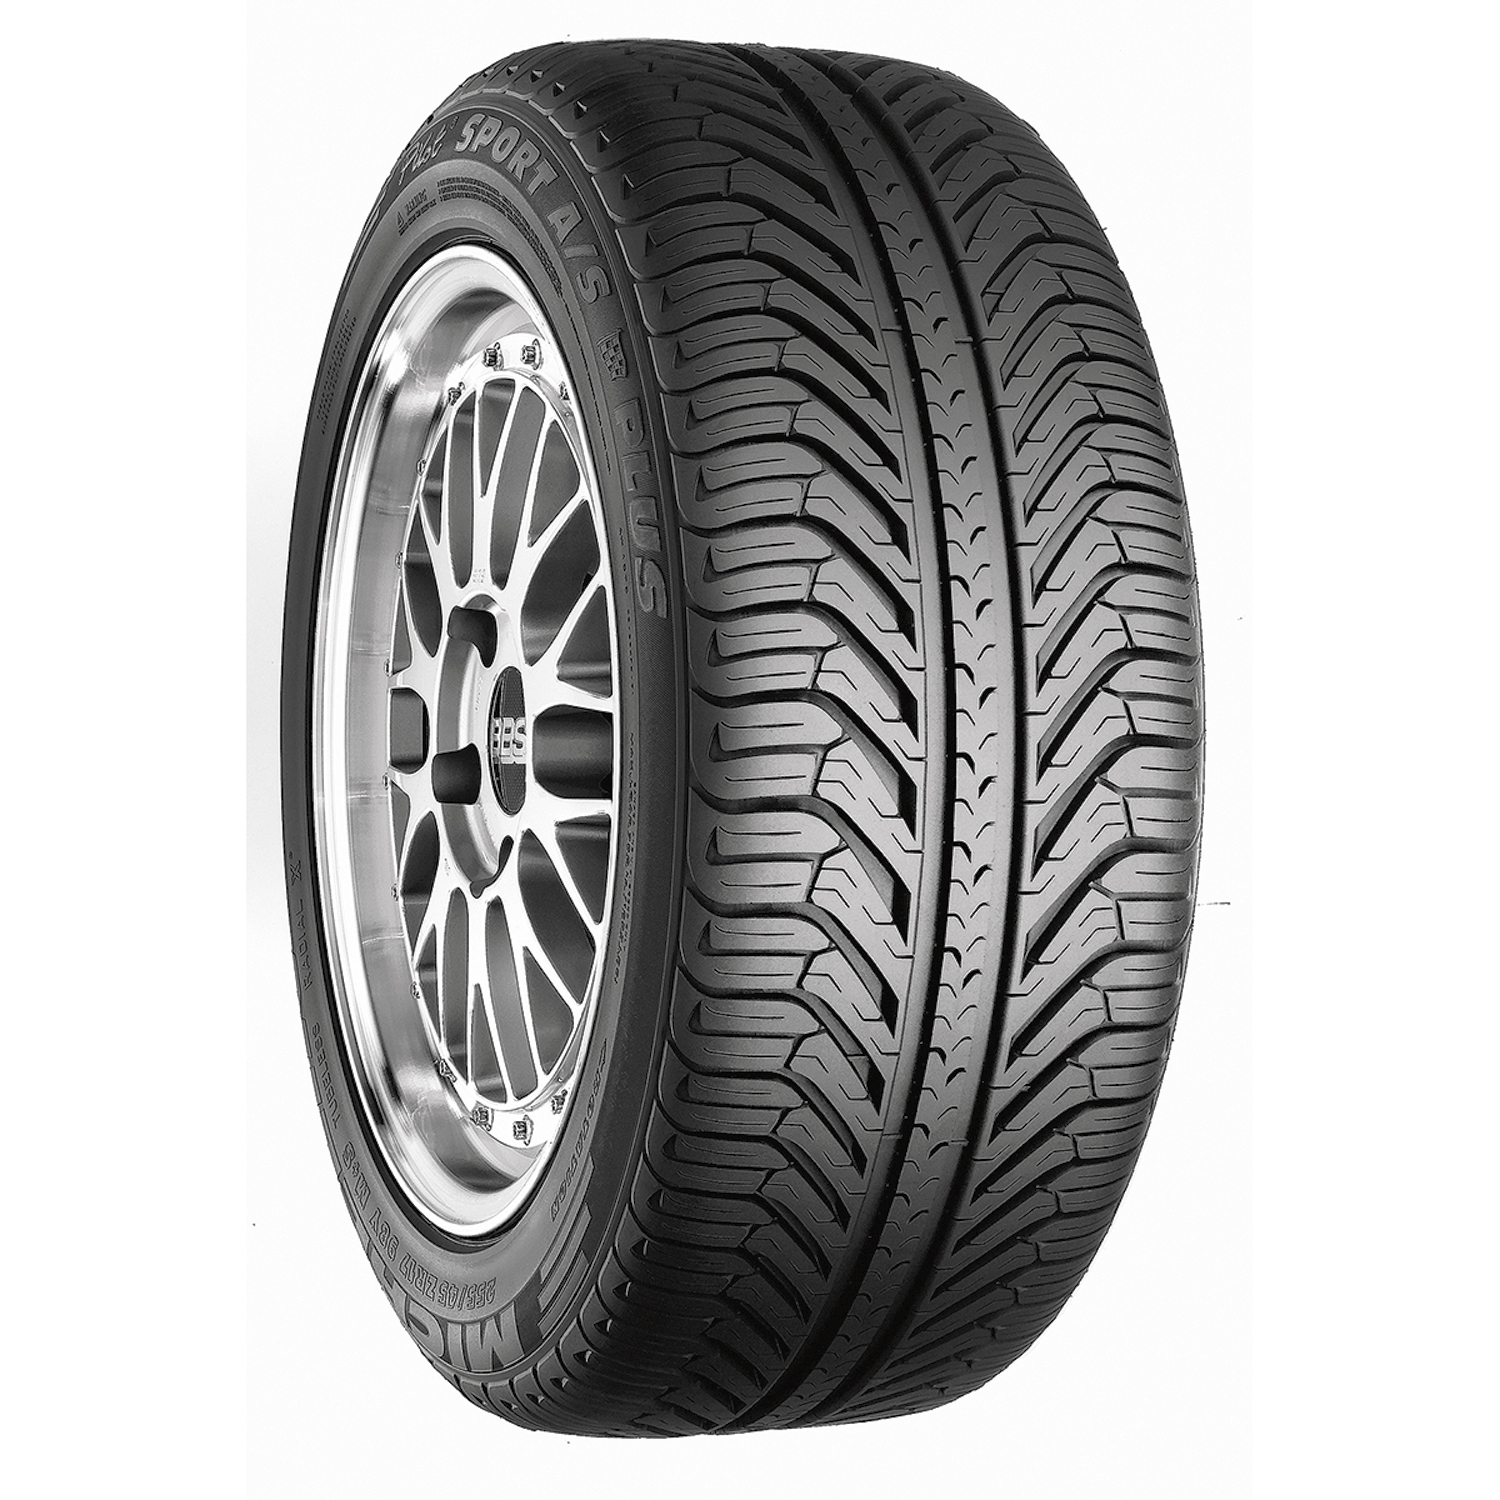 Sporting Goods Stores Michelin Pilot Sport A/S Plus - 225/60R16 98W BW - All Season Tire 225-60-16